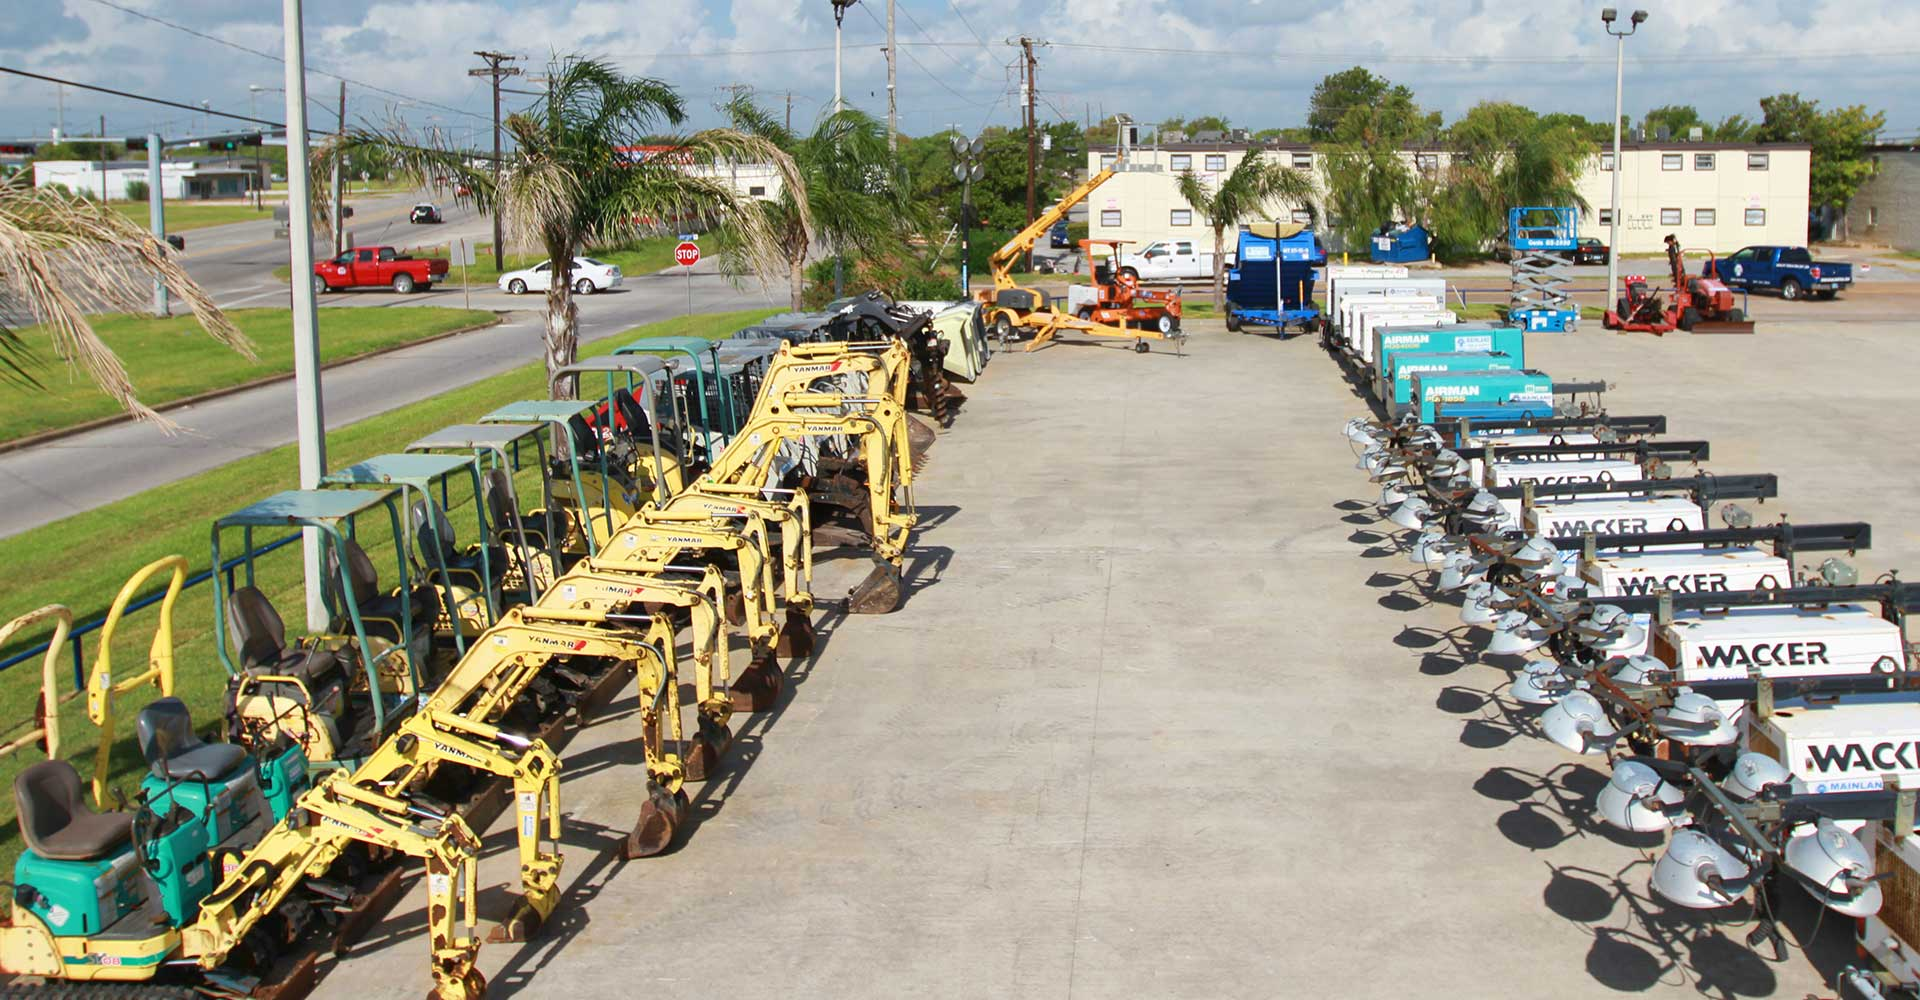 Heavy Equipment Rentals in Pasadena, Texas City, Houston, Galveston TX